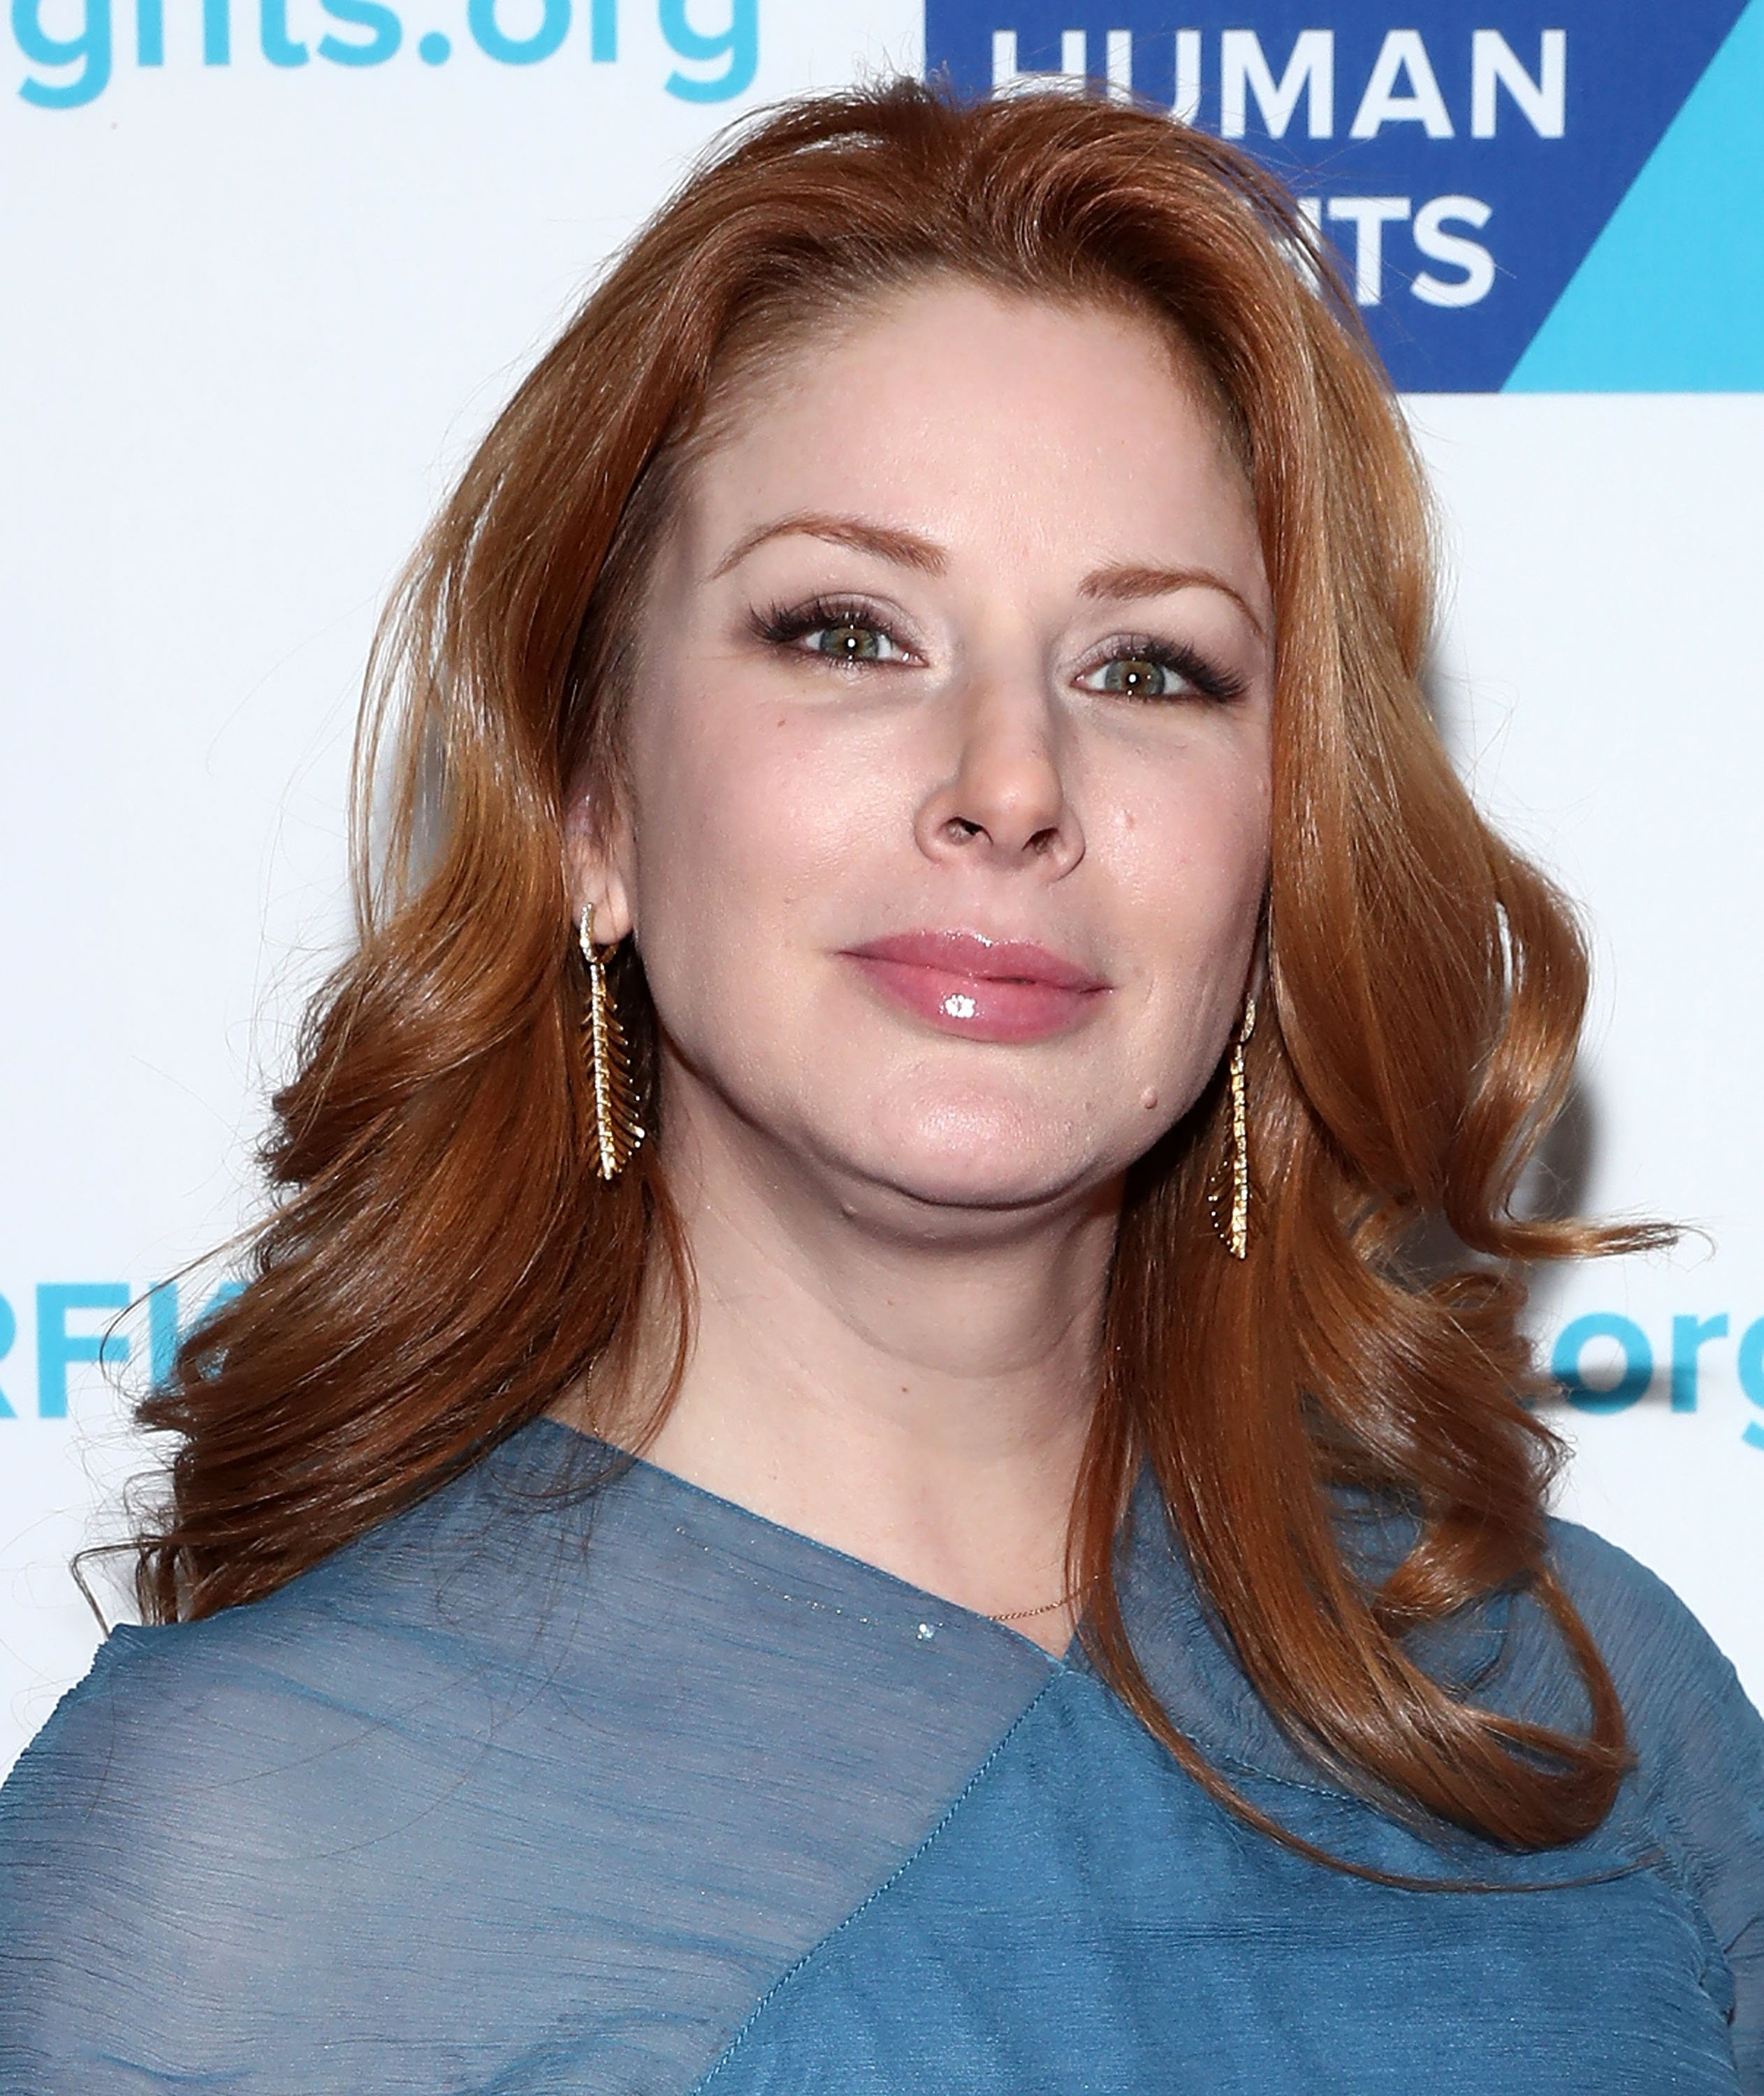 Diane Neal attends the 2016 Robert F. Kennedy Human Rights' Ripple Of Hope Awards at New York Hilton Midtown on December 6, 2016, in New York City. | Source: Getty Images.